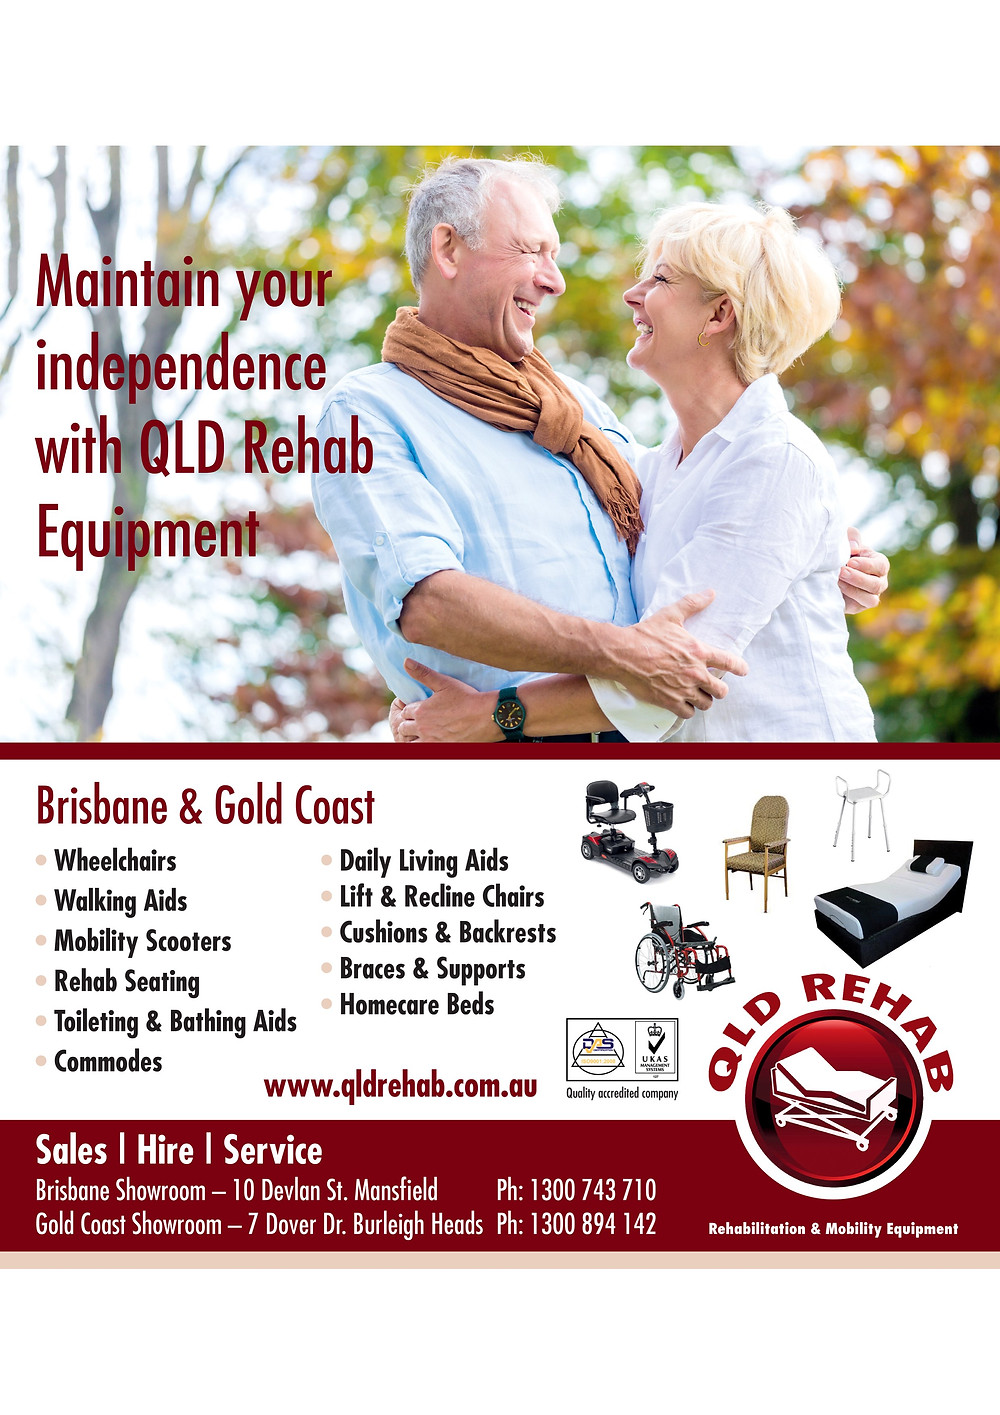 Qld Rehab Equipment are advertising in Your Time magazine